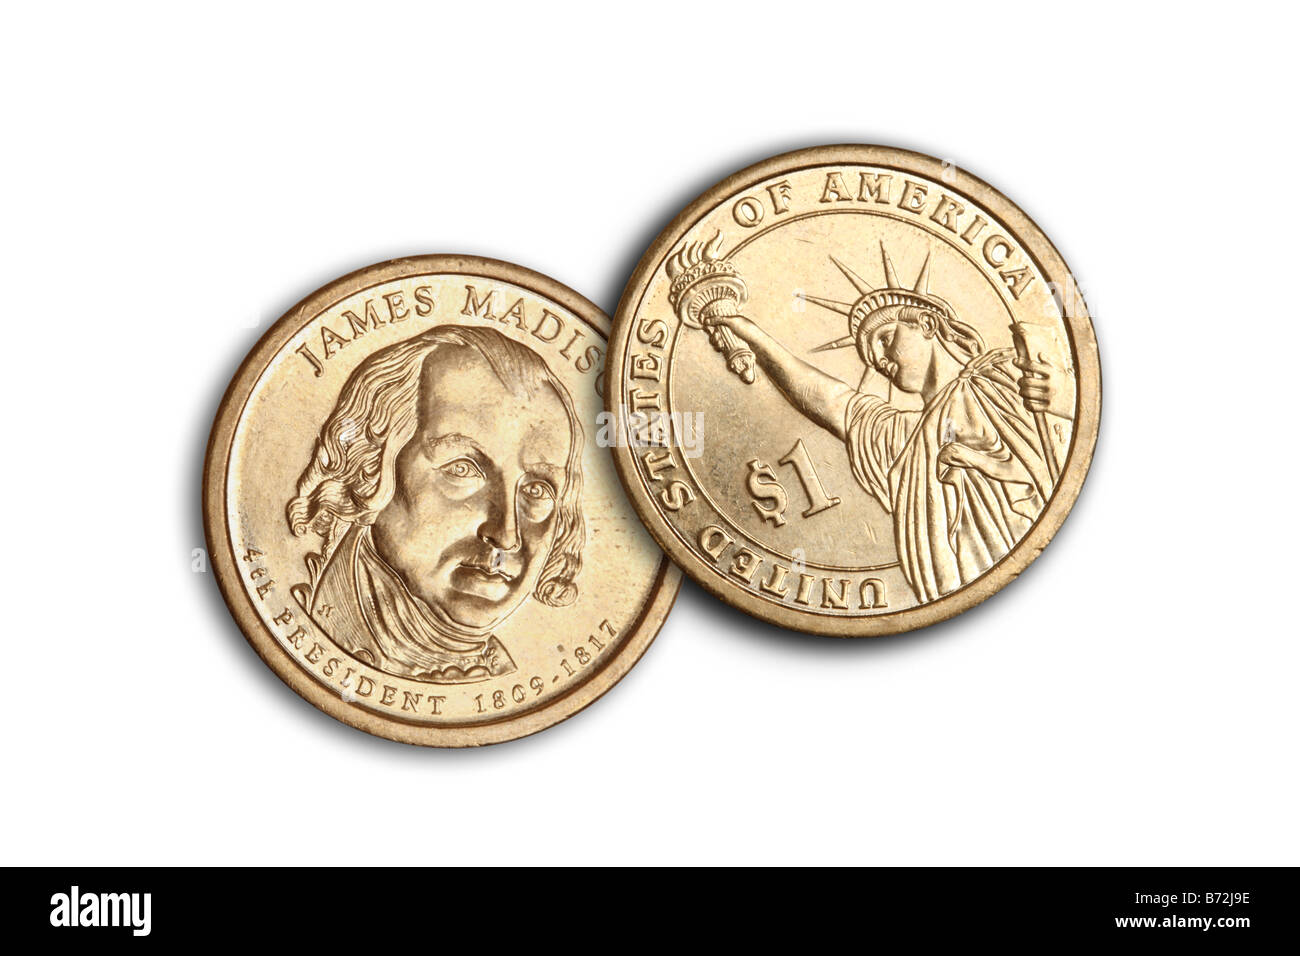 One dollar US coins cut out on white background - Stock Image